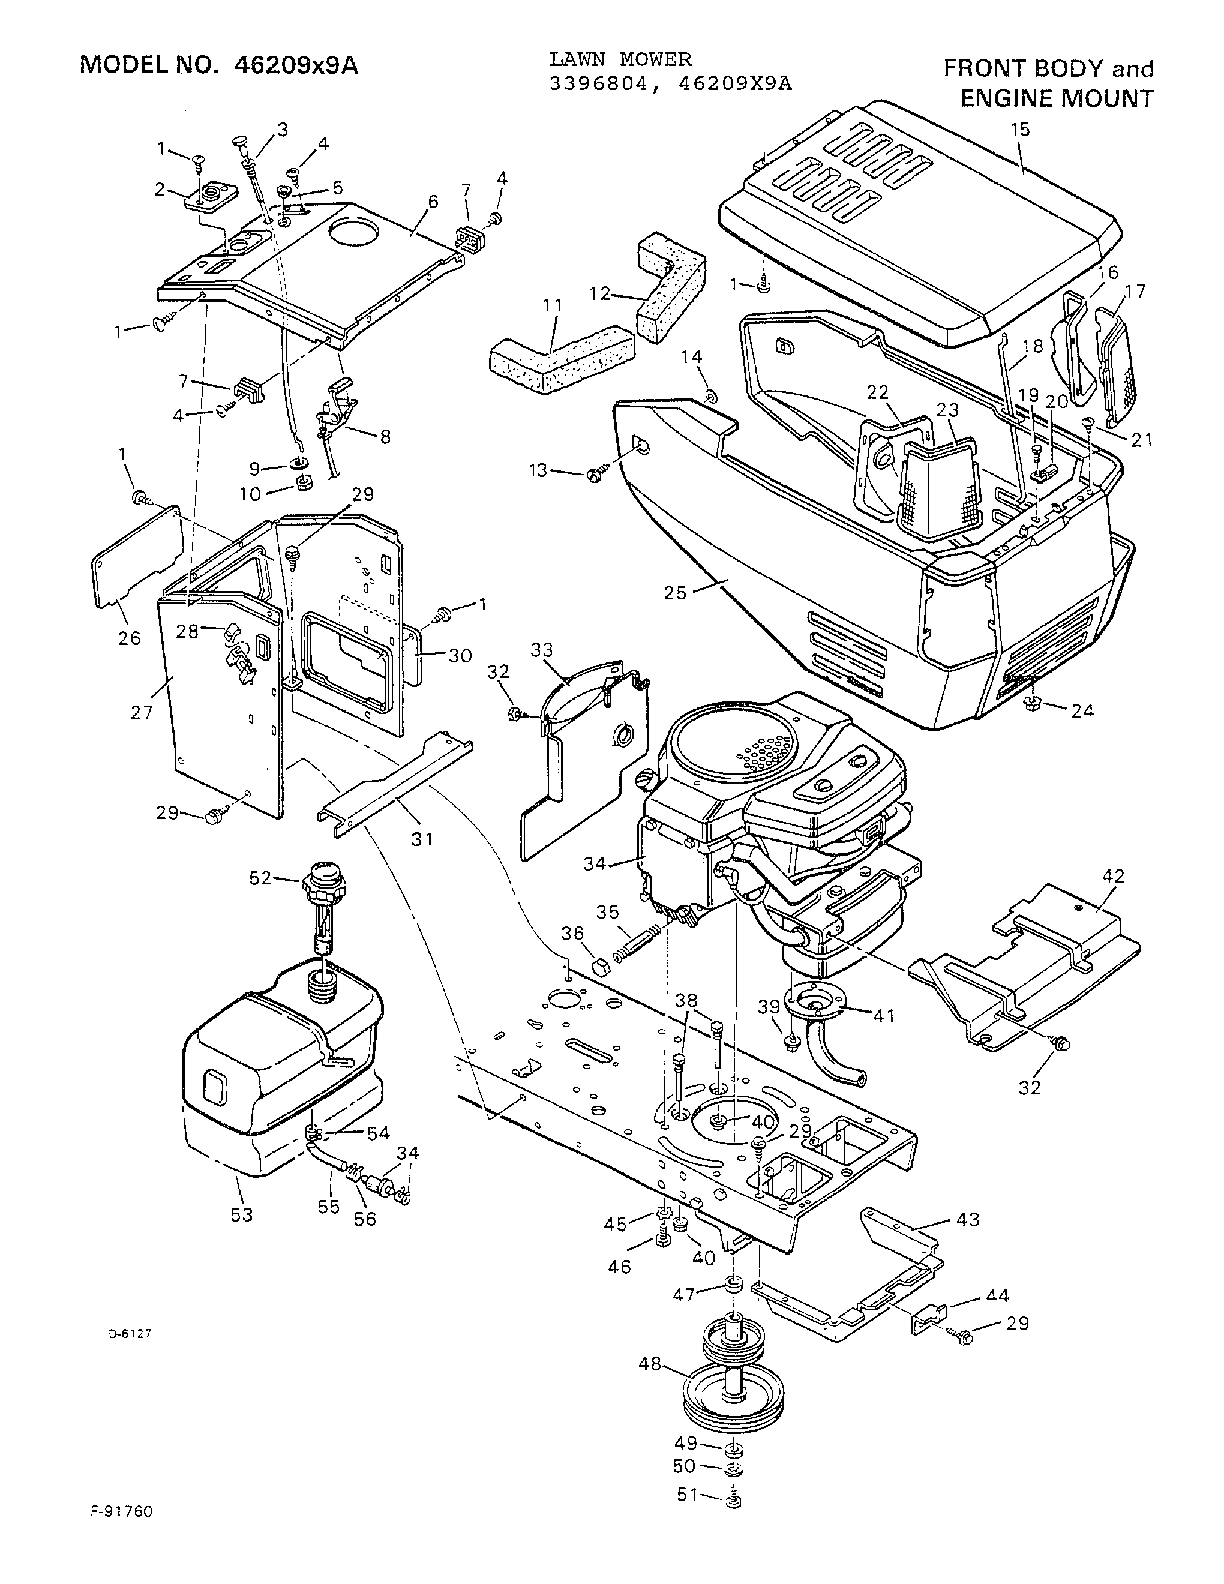 Murray lawn mower parts manual